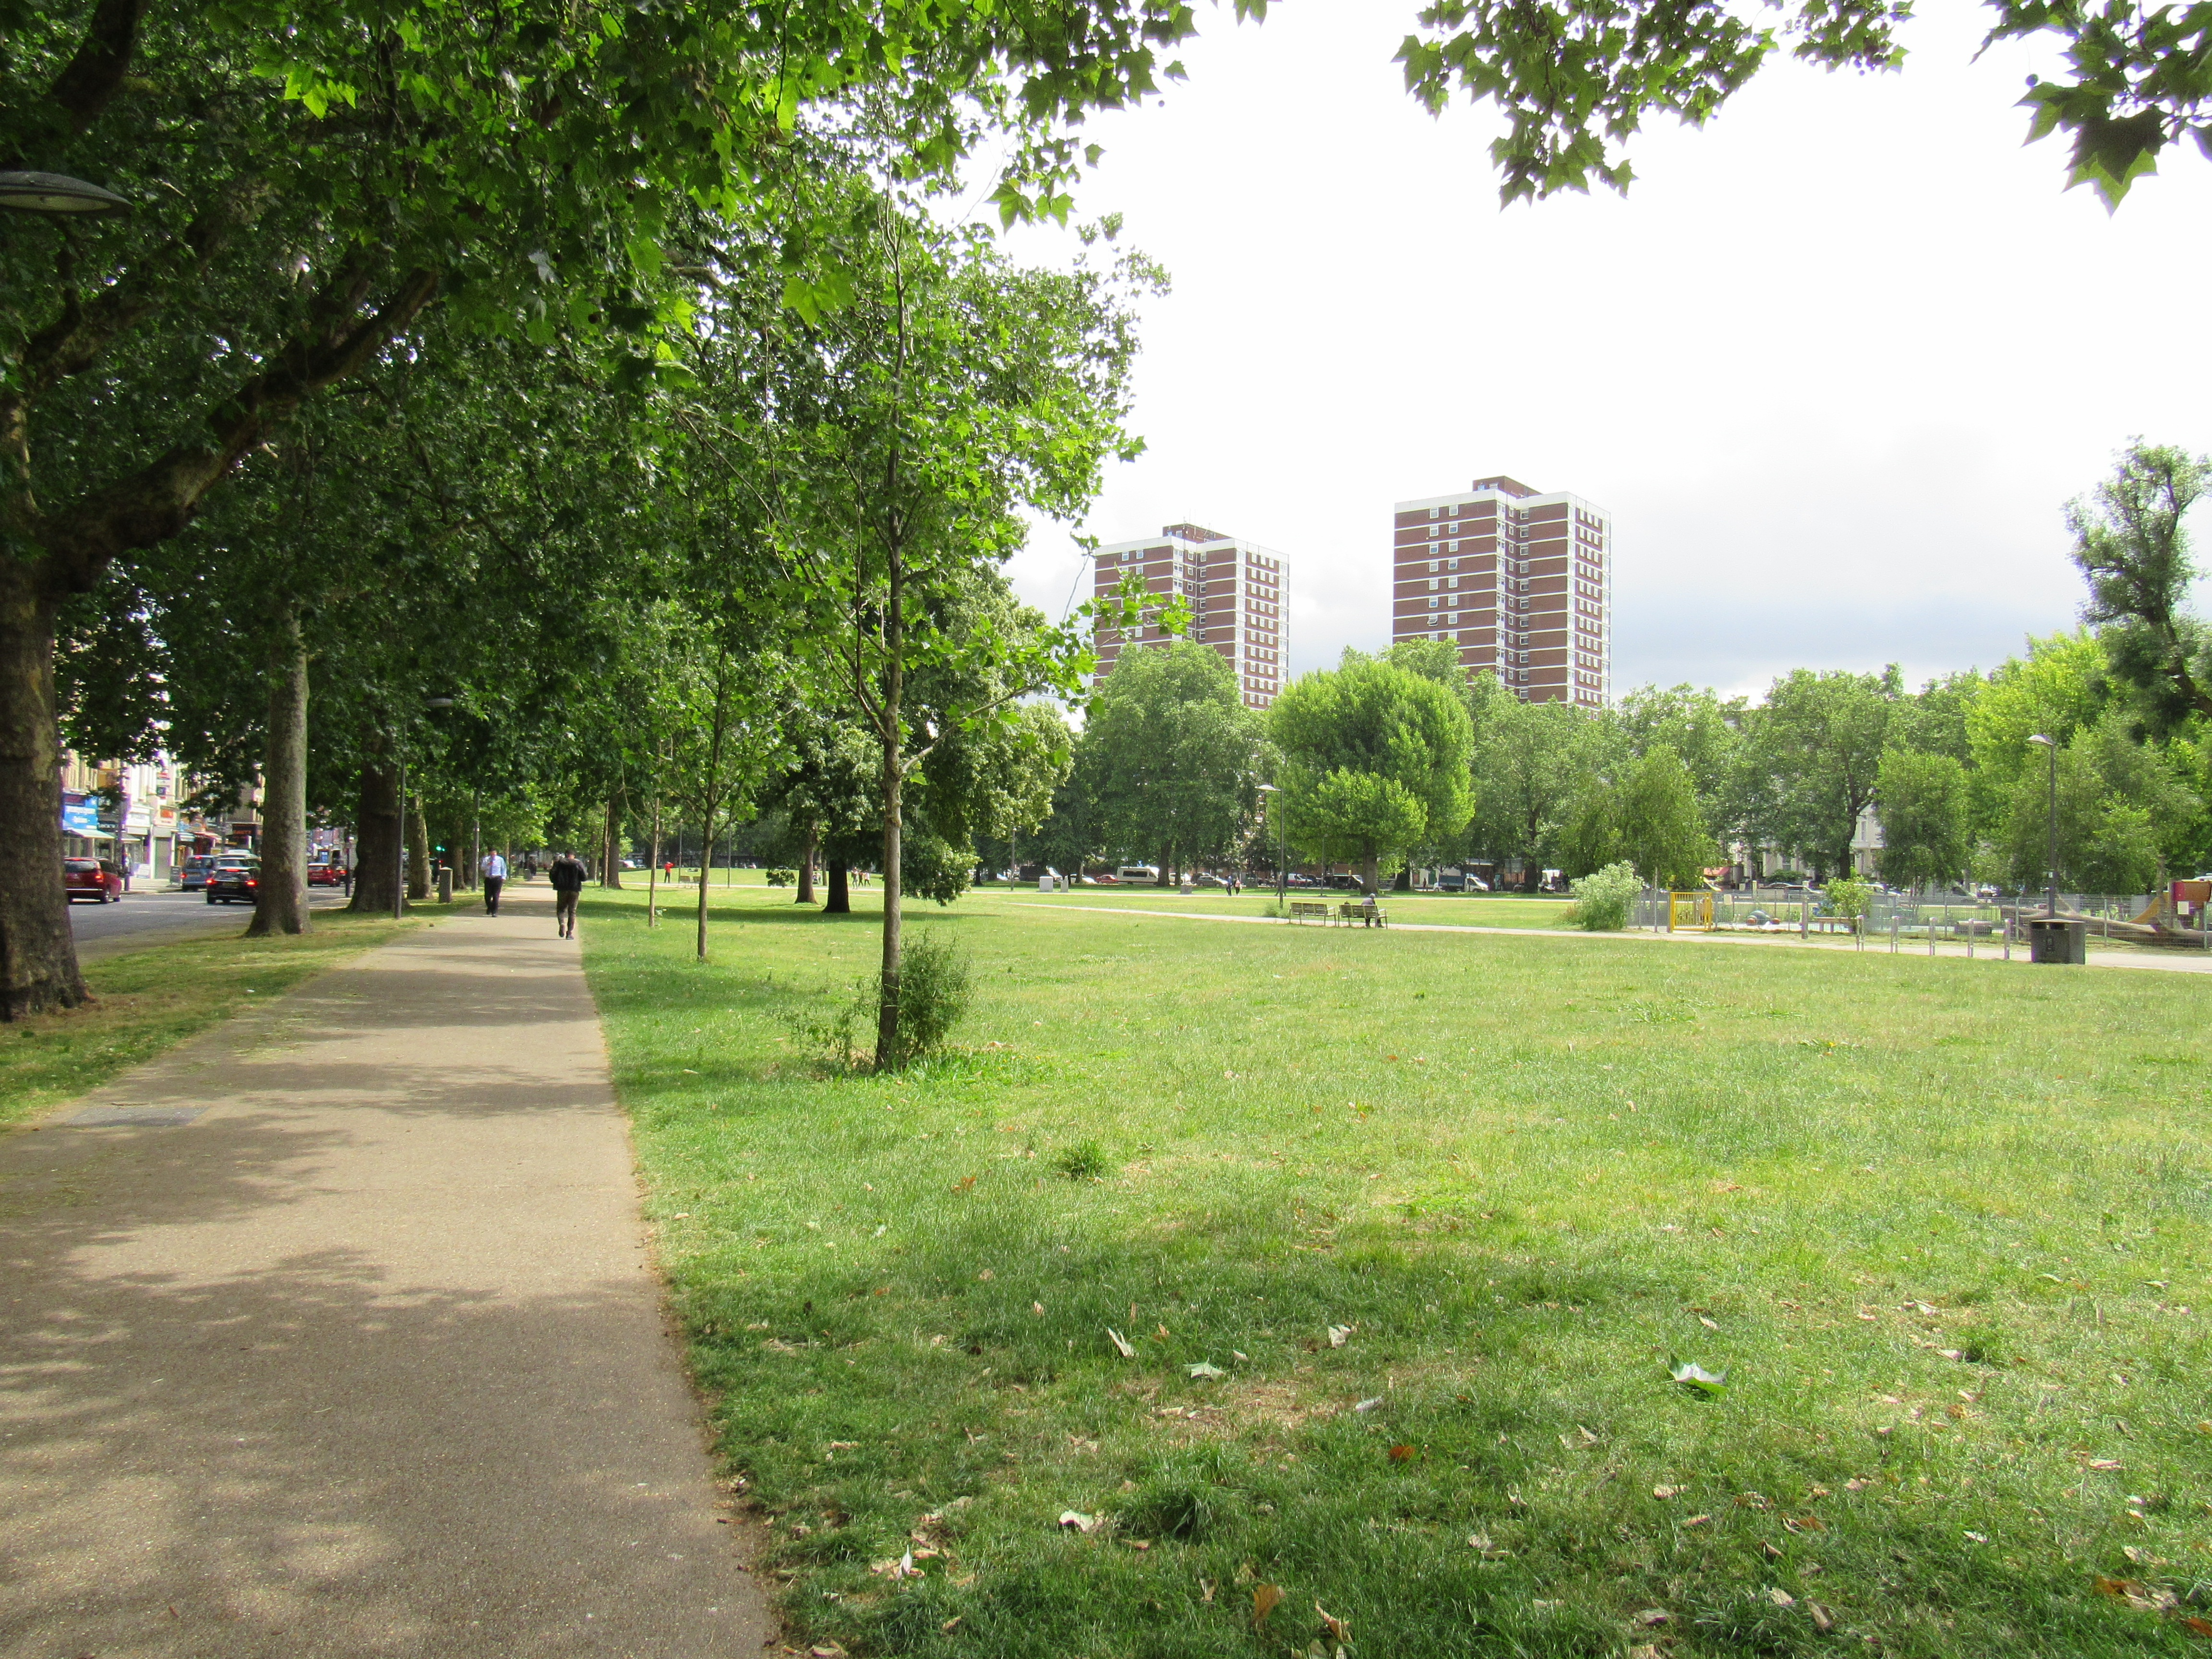 A Park in Goldhawk